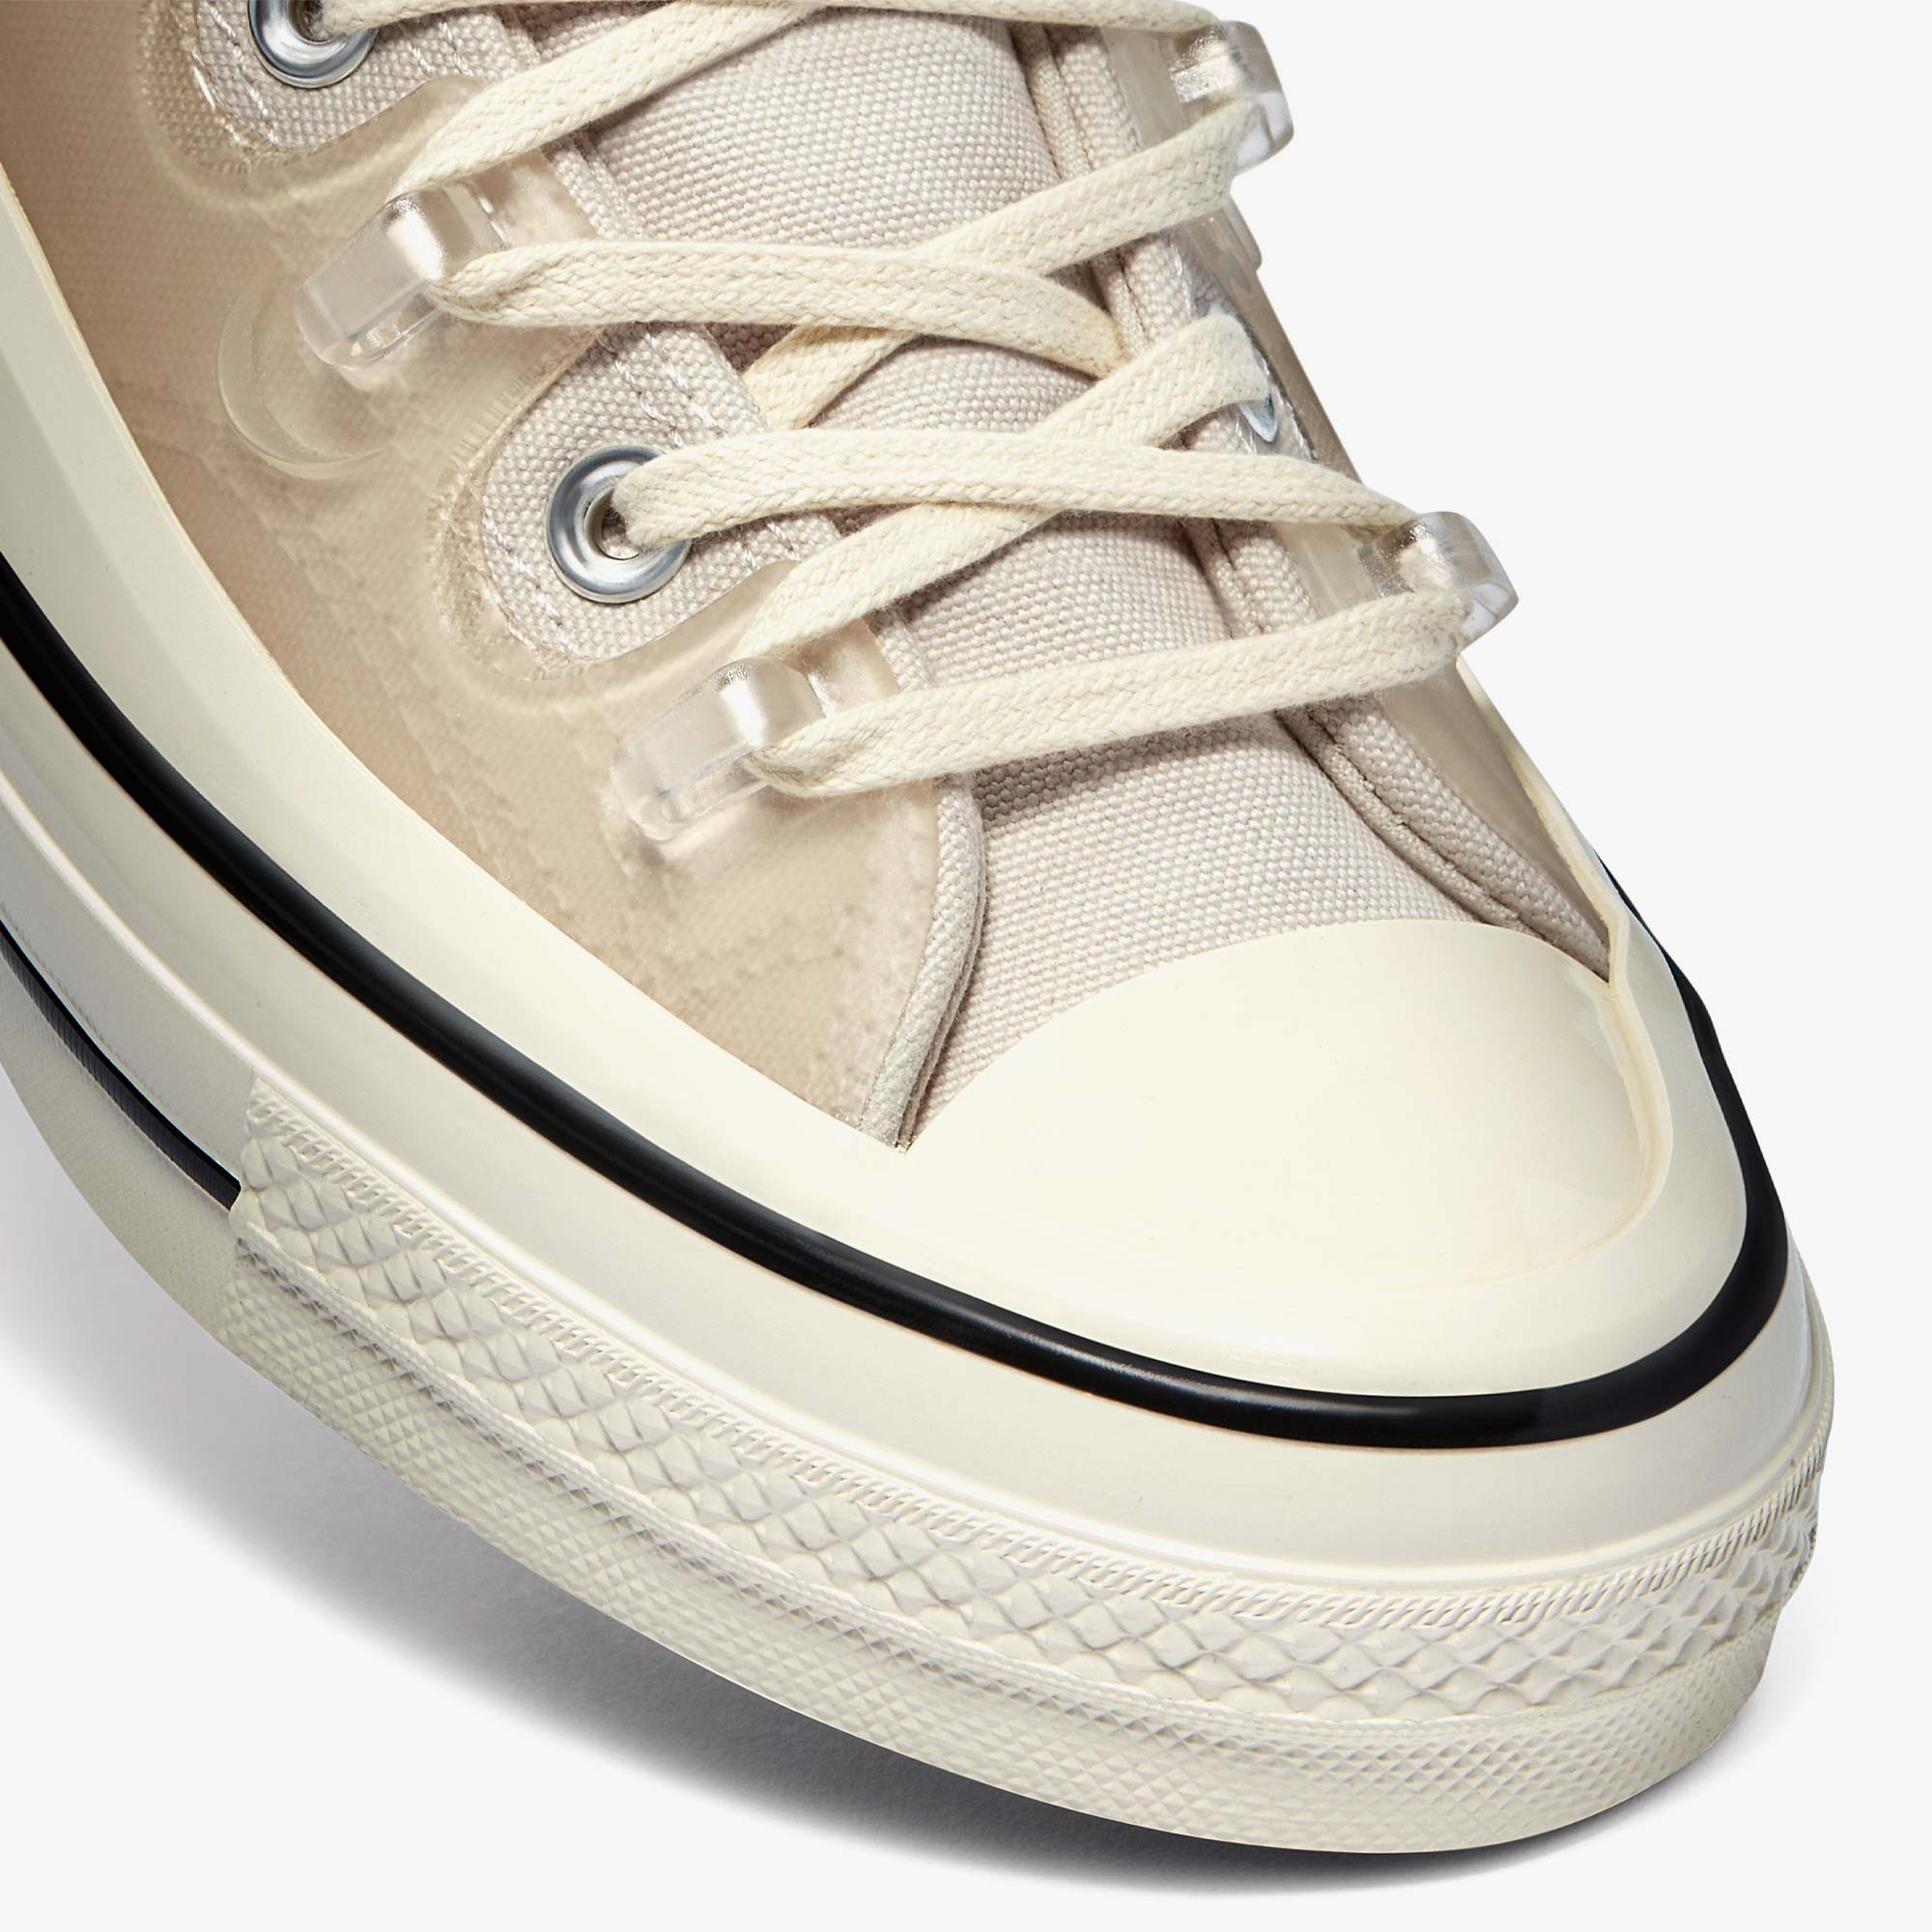 Converse x Kim Jones Chuck 70 Utility Wave Hi - White 5